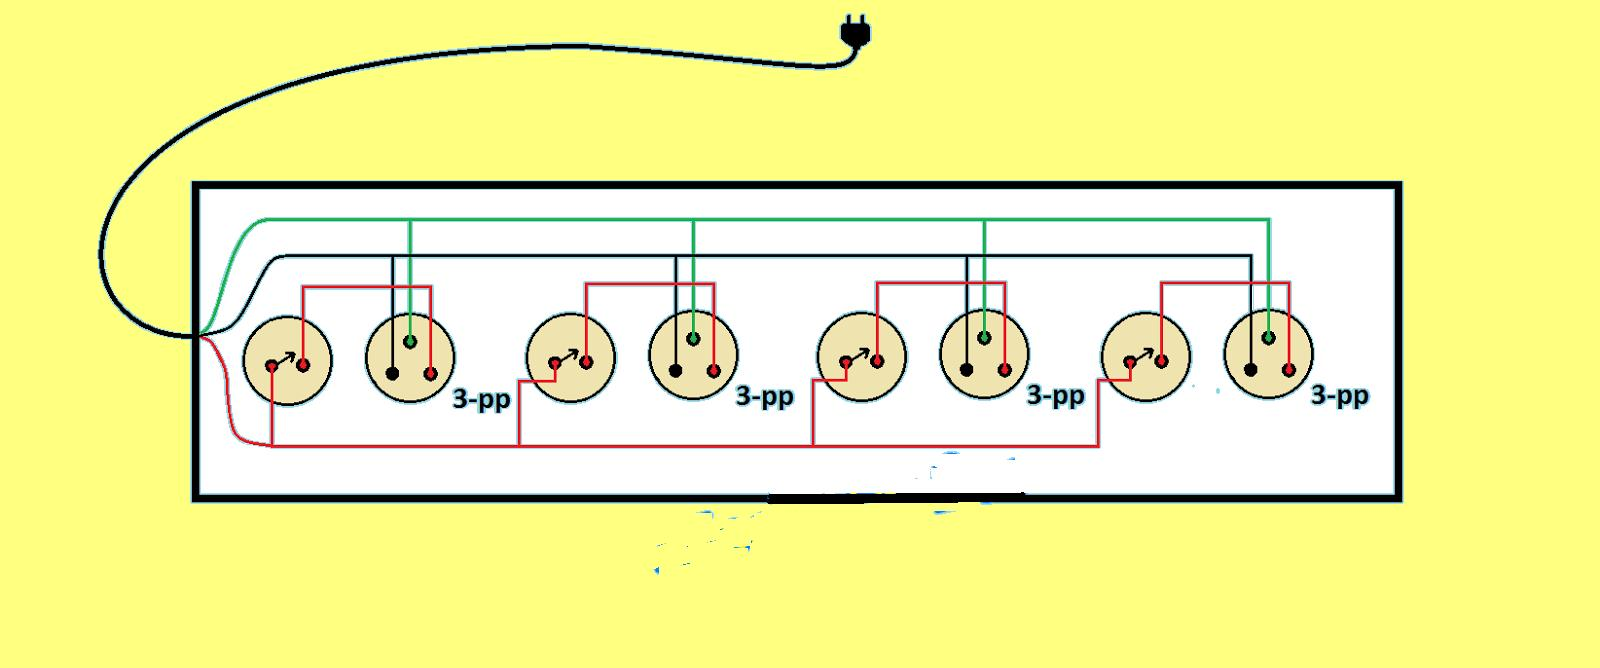 91 91 jpg extension board wiring diagram at bakdesigns.co